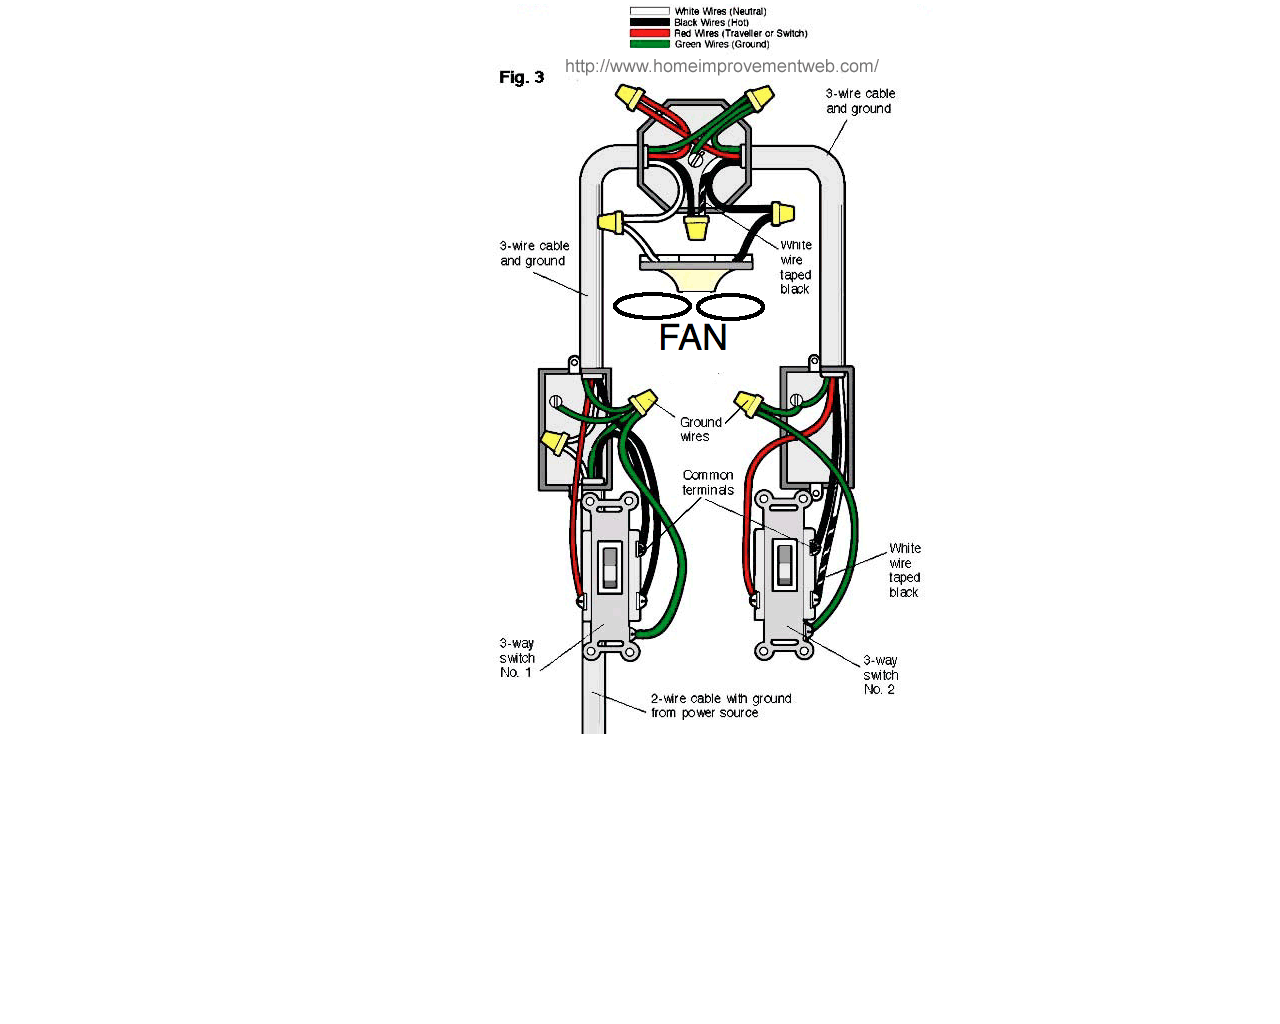 please give me a proper diagram for wiring a ceiling fan